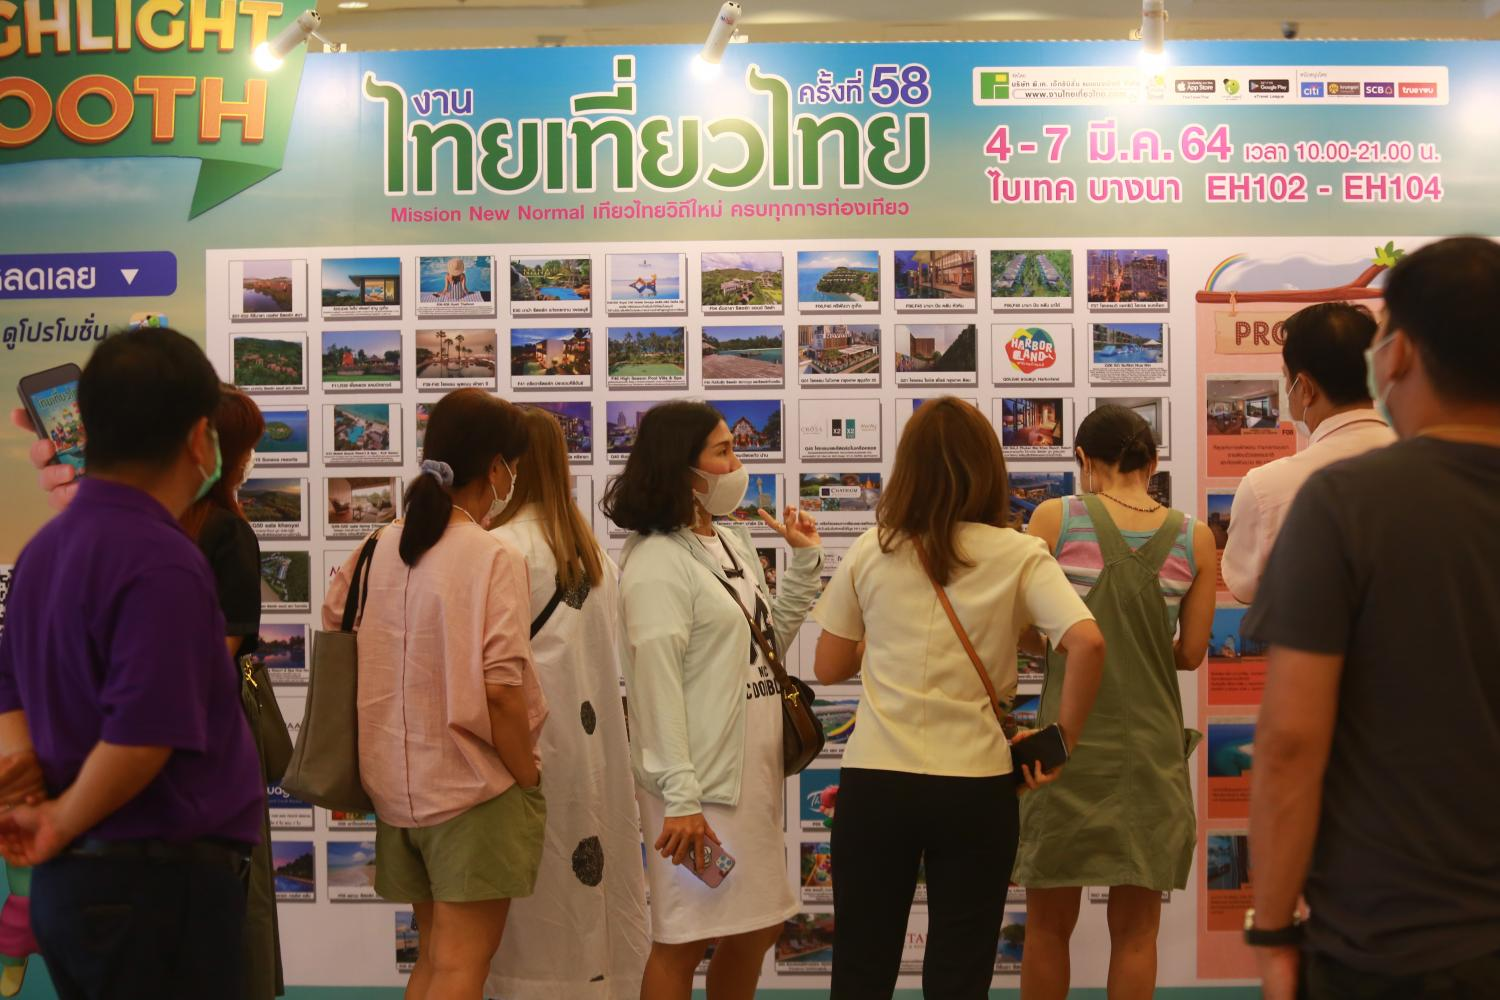 Visitors check out travel promotions at the 58th Thai Tiew Thai travel fair, which kicked off yesterday at Bitec Bangna. (Photo by Somchai Poomlard)